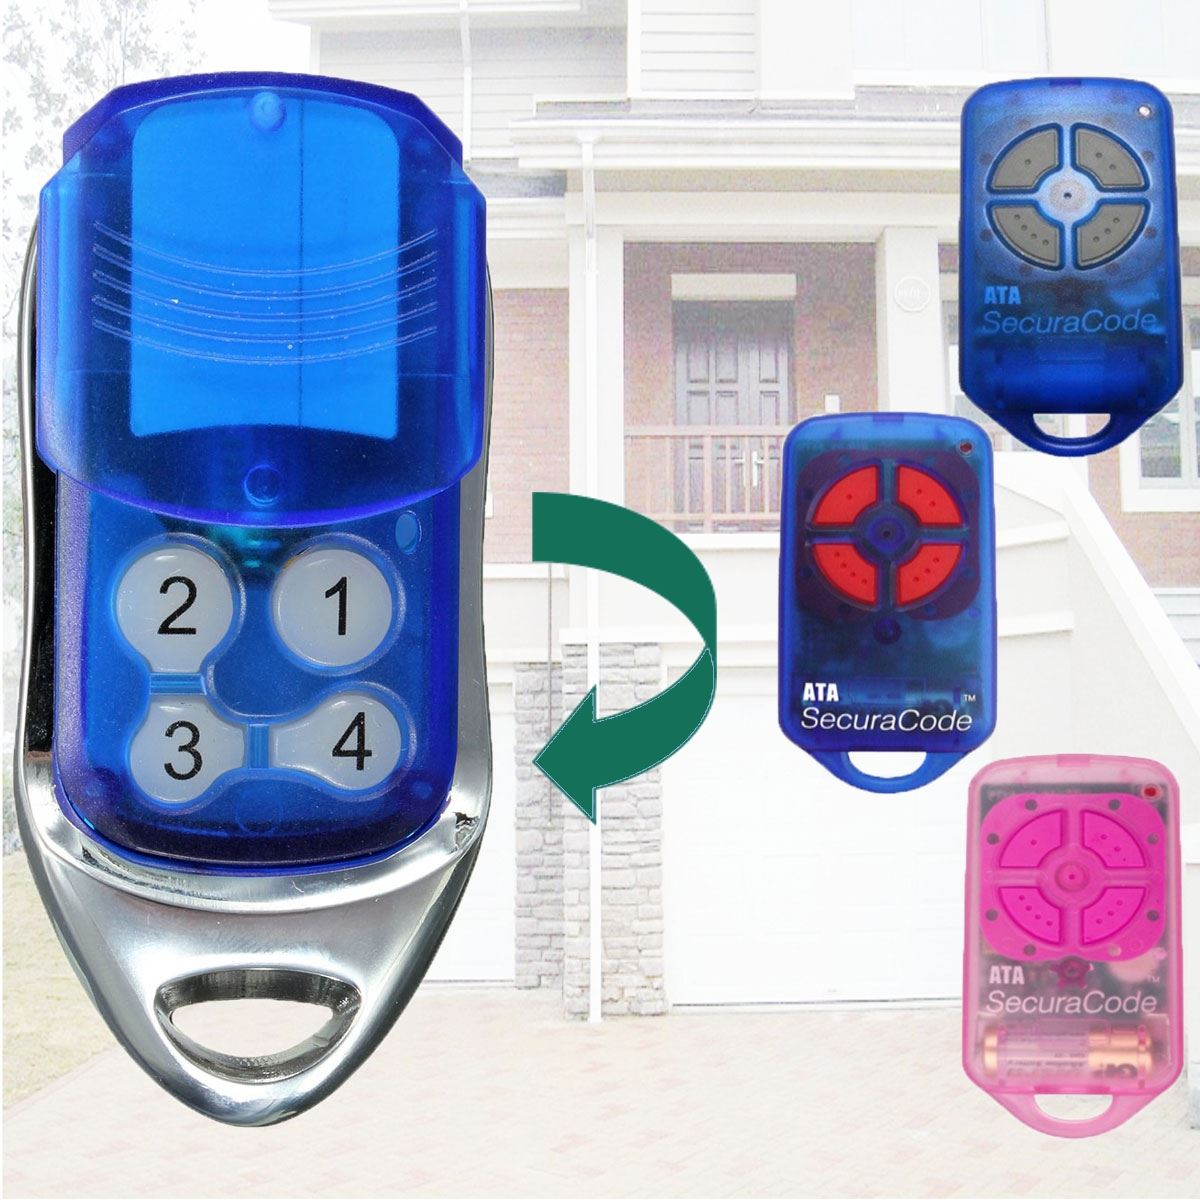 433.92 MHz Gate/Garage Door Remote Control Transmitter For ATA PTX4 SecuraCode after market ata securacode remote